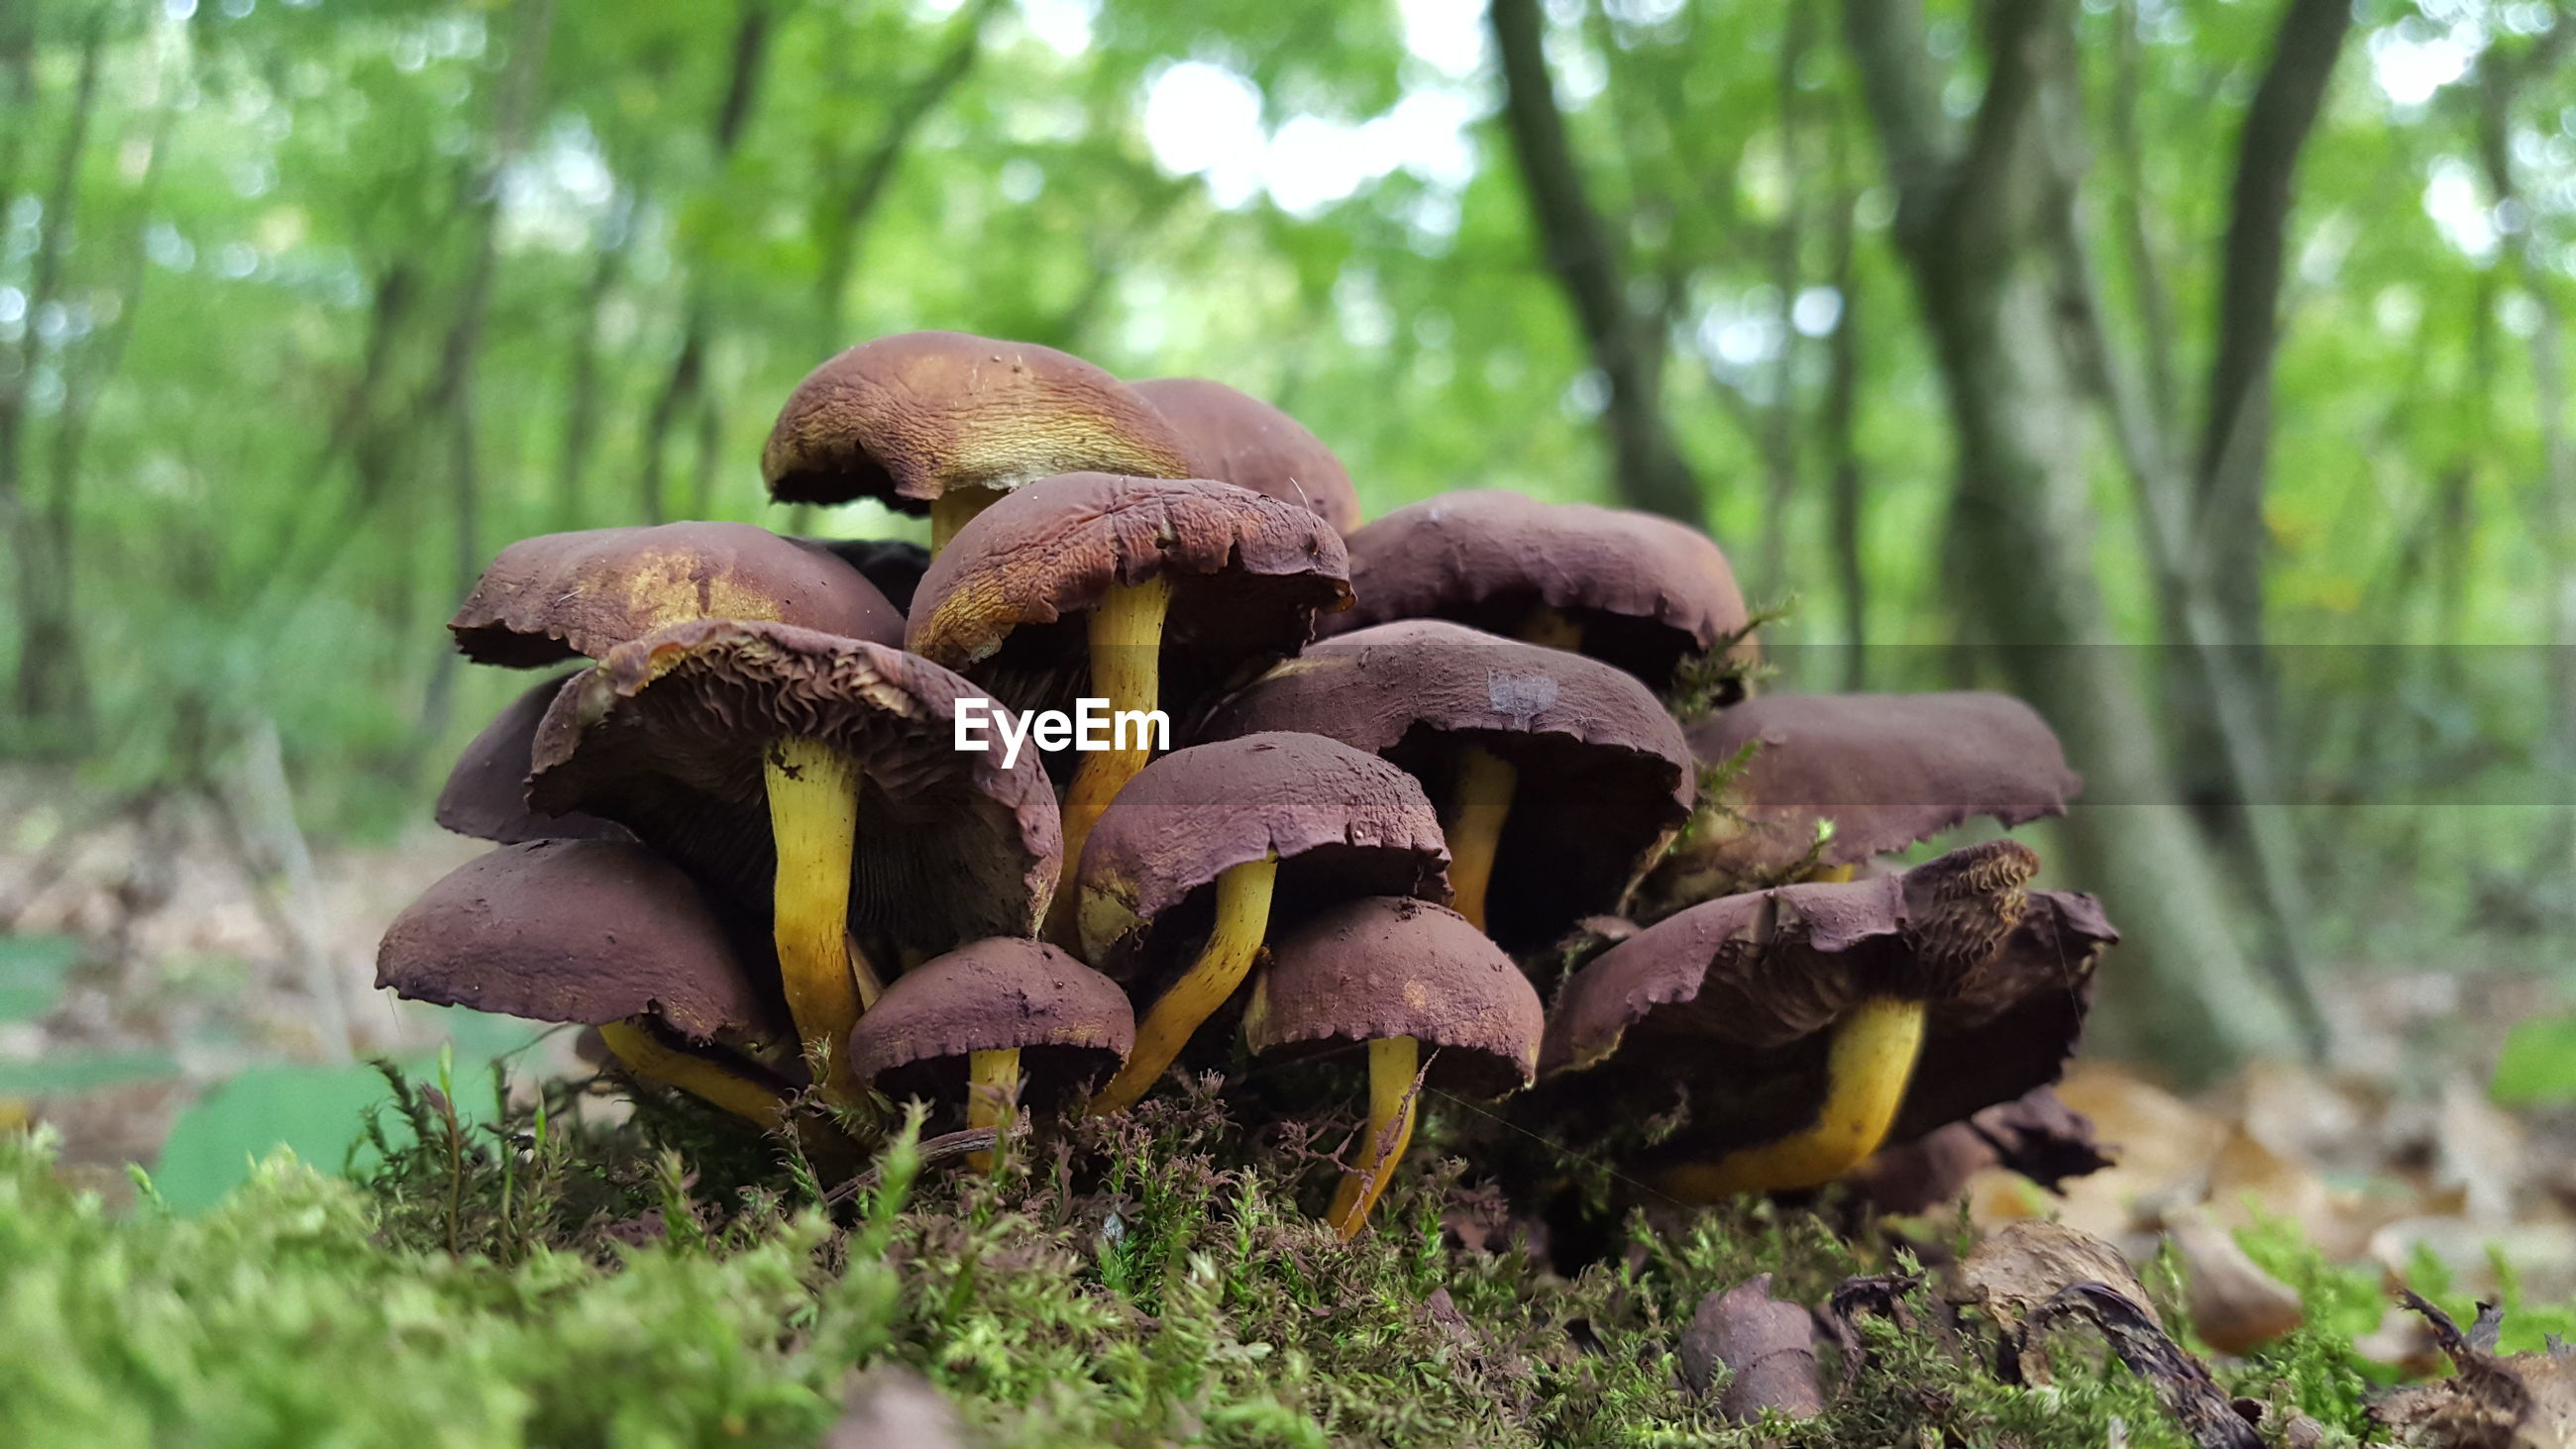 CLOSE-UP OF MUSHROOMS GROWING ON FIELD IN FOREST